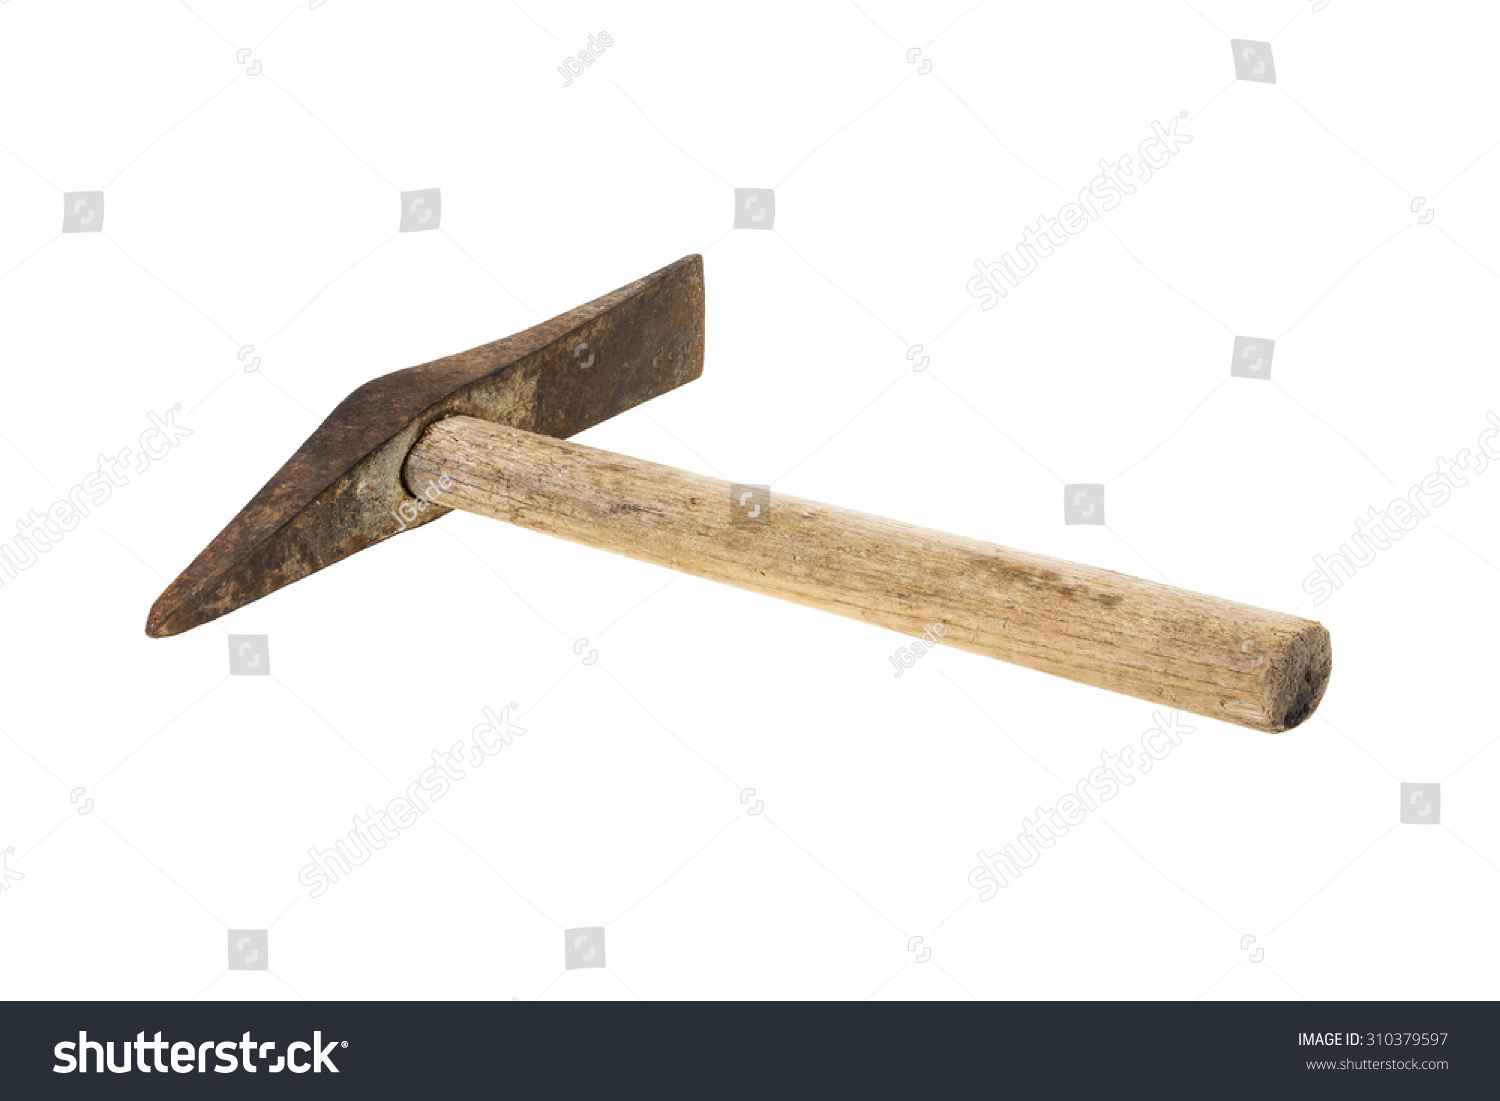 old and rusty welding or chipping hammer isolated on white background